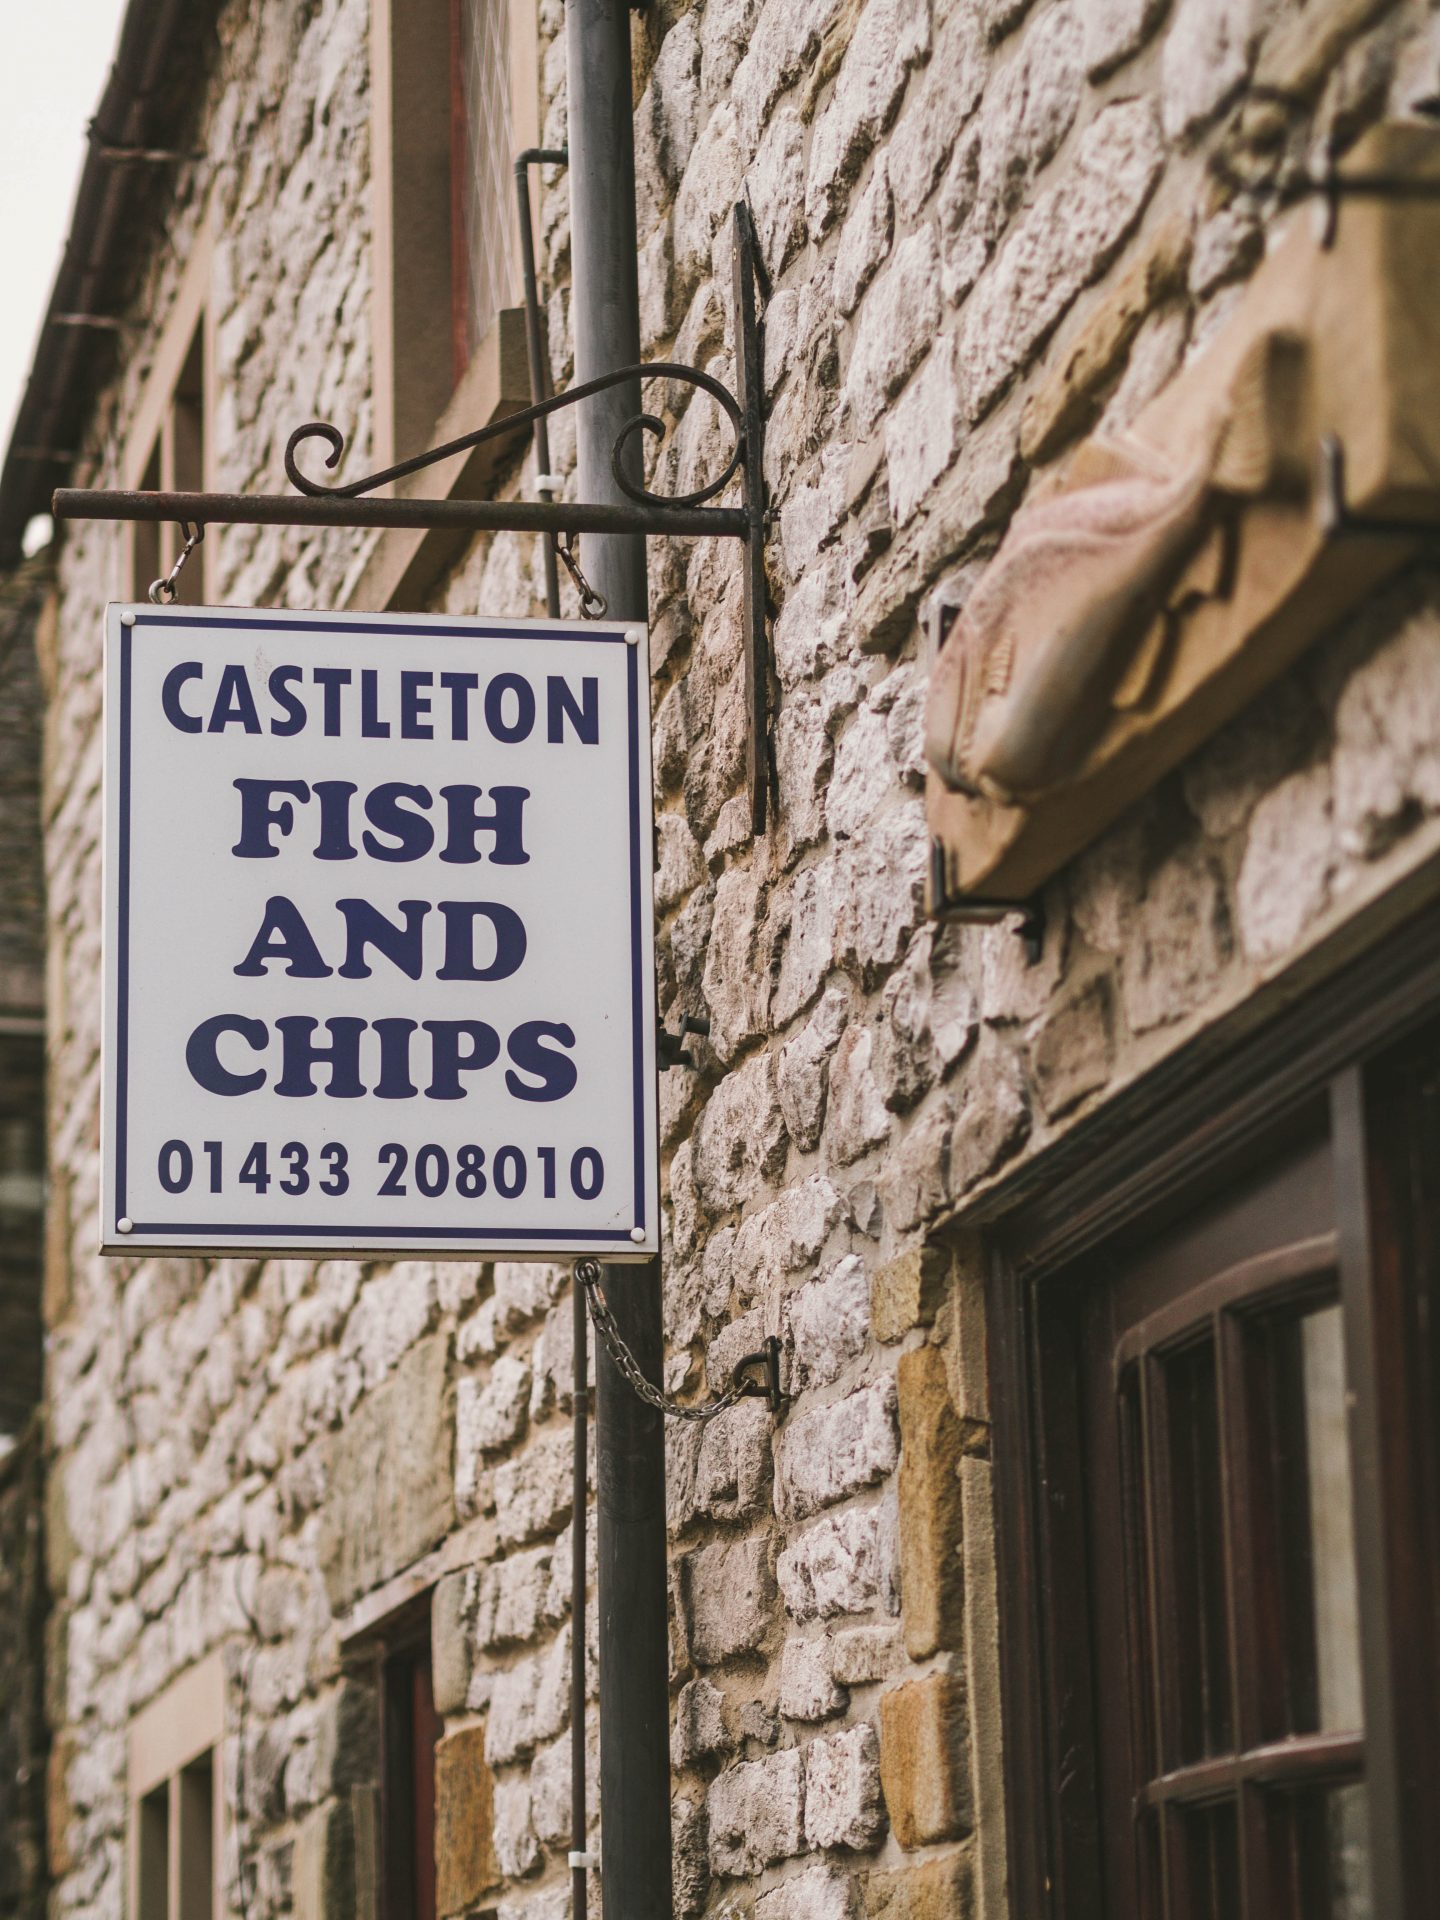 Castleton Fish and Chip Shop, Derbyshire,